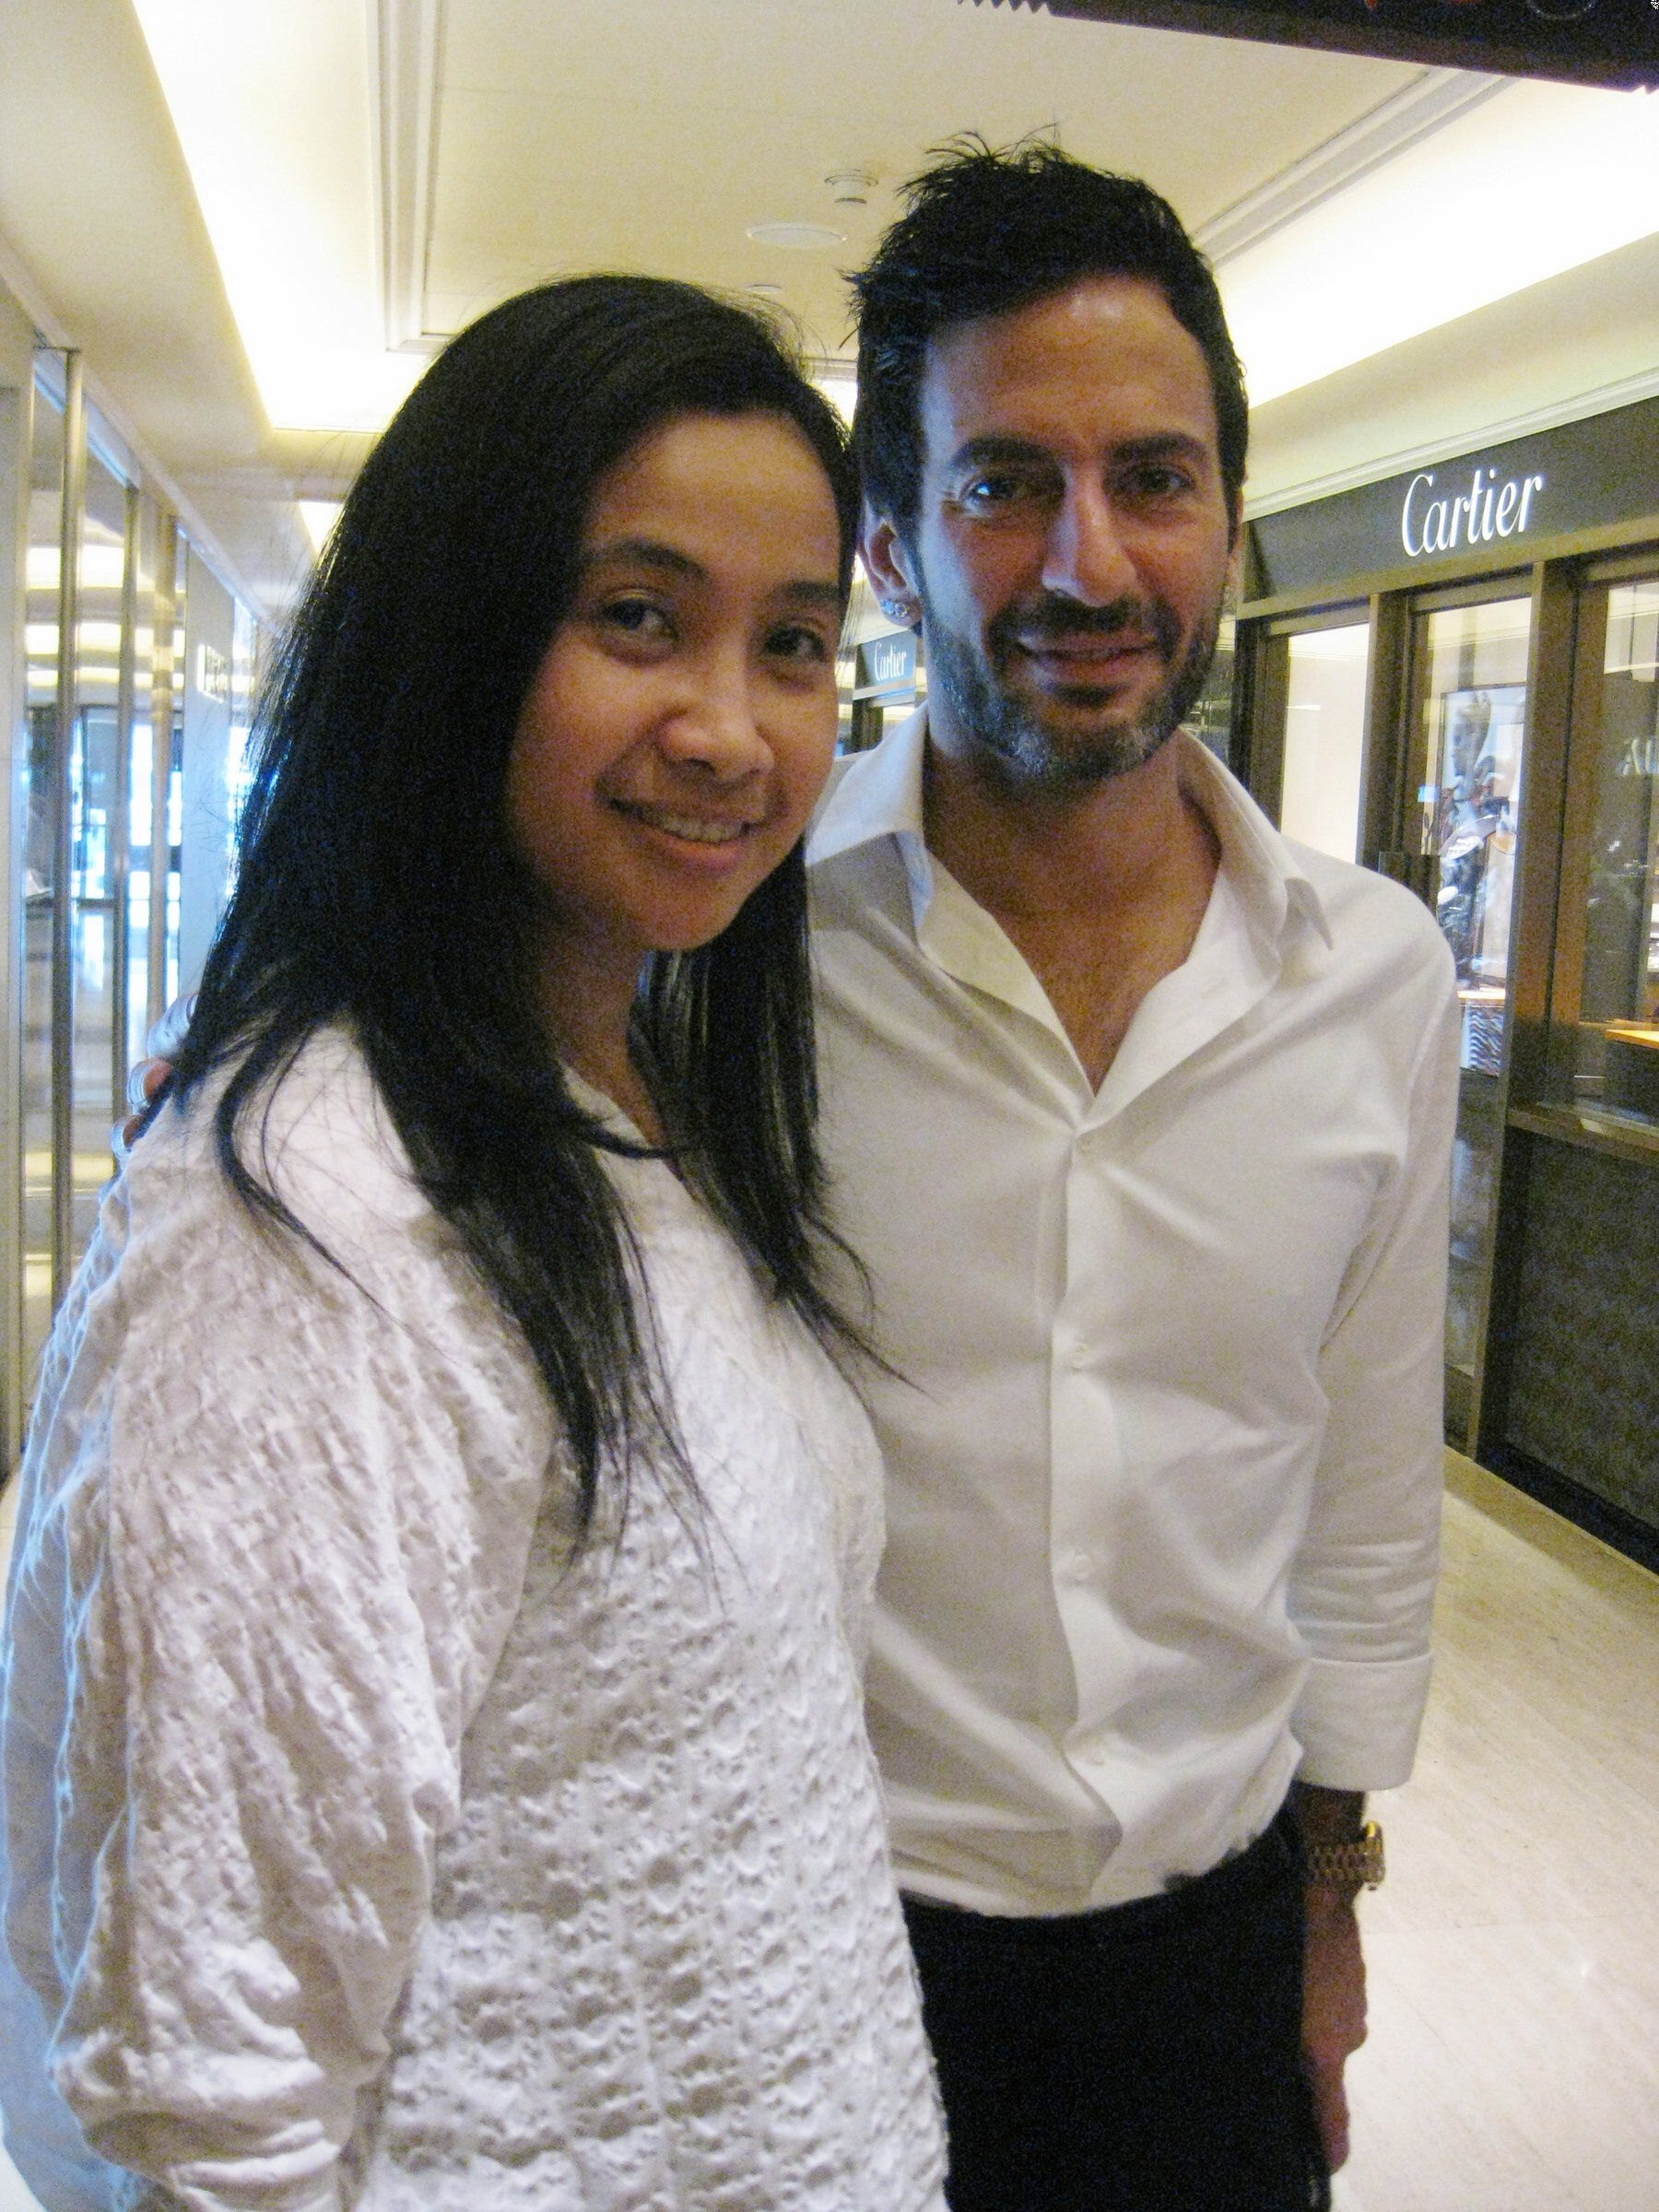 Rustika Herlambang and Marc Jacobs, Passion for Creation